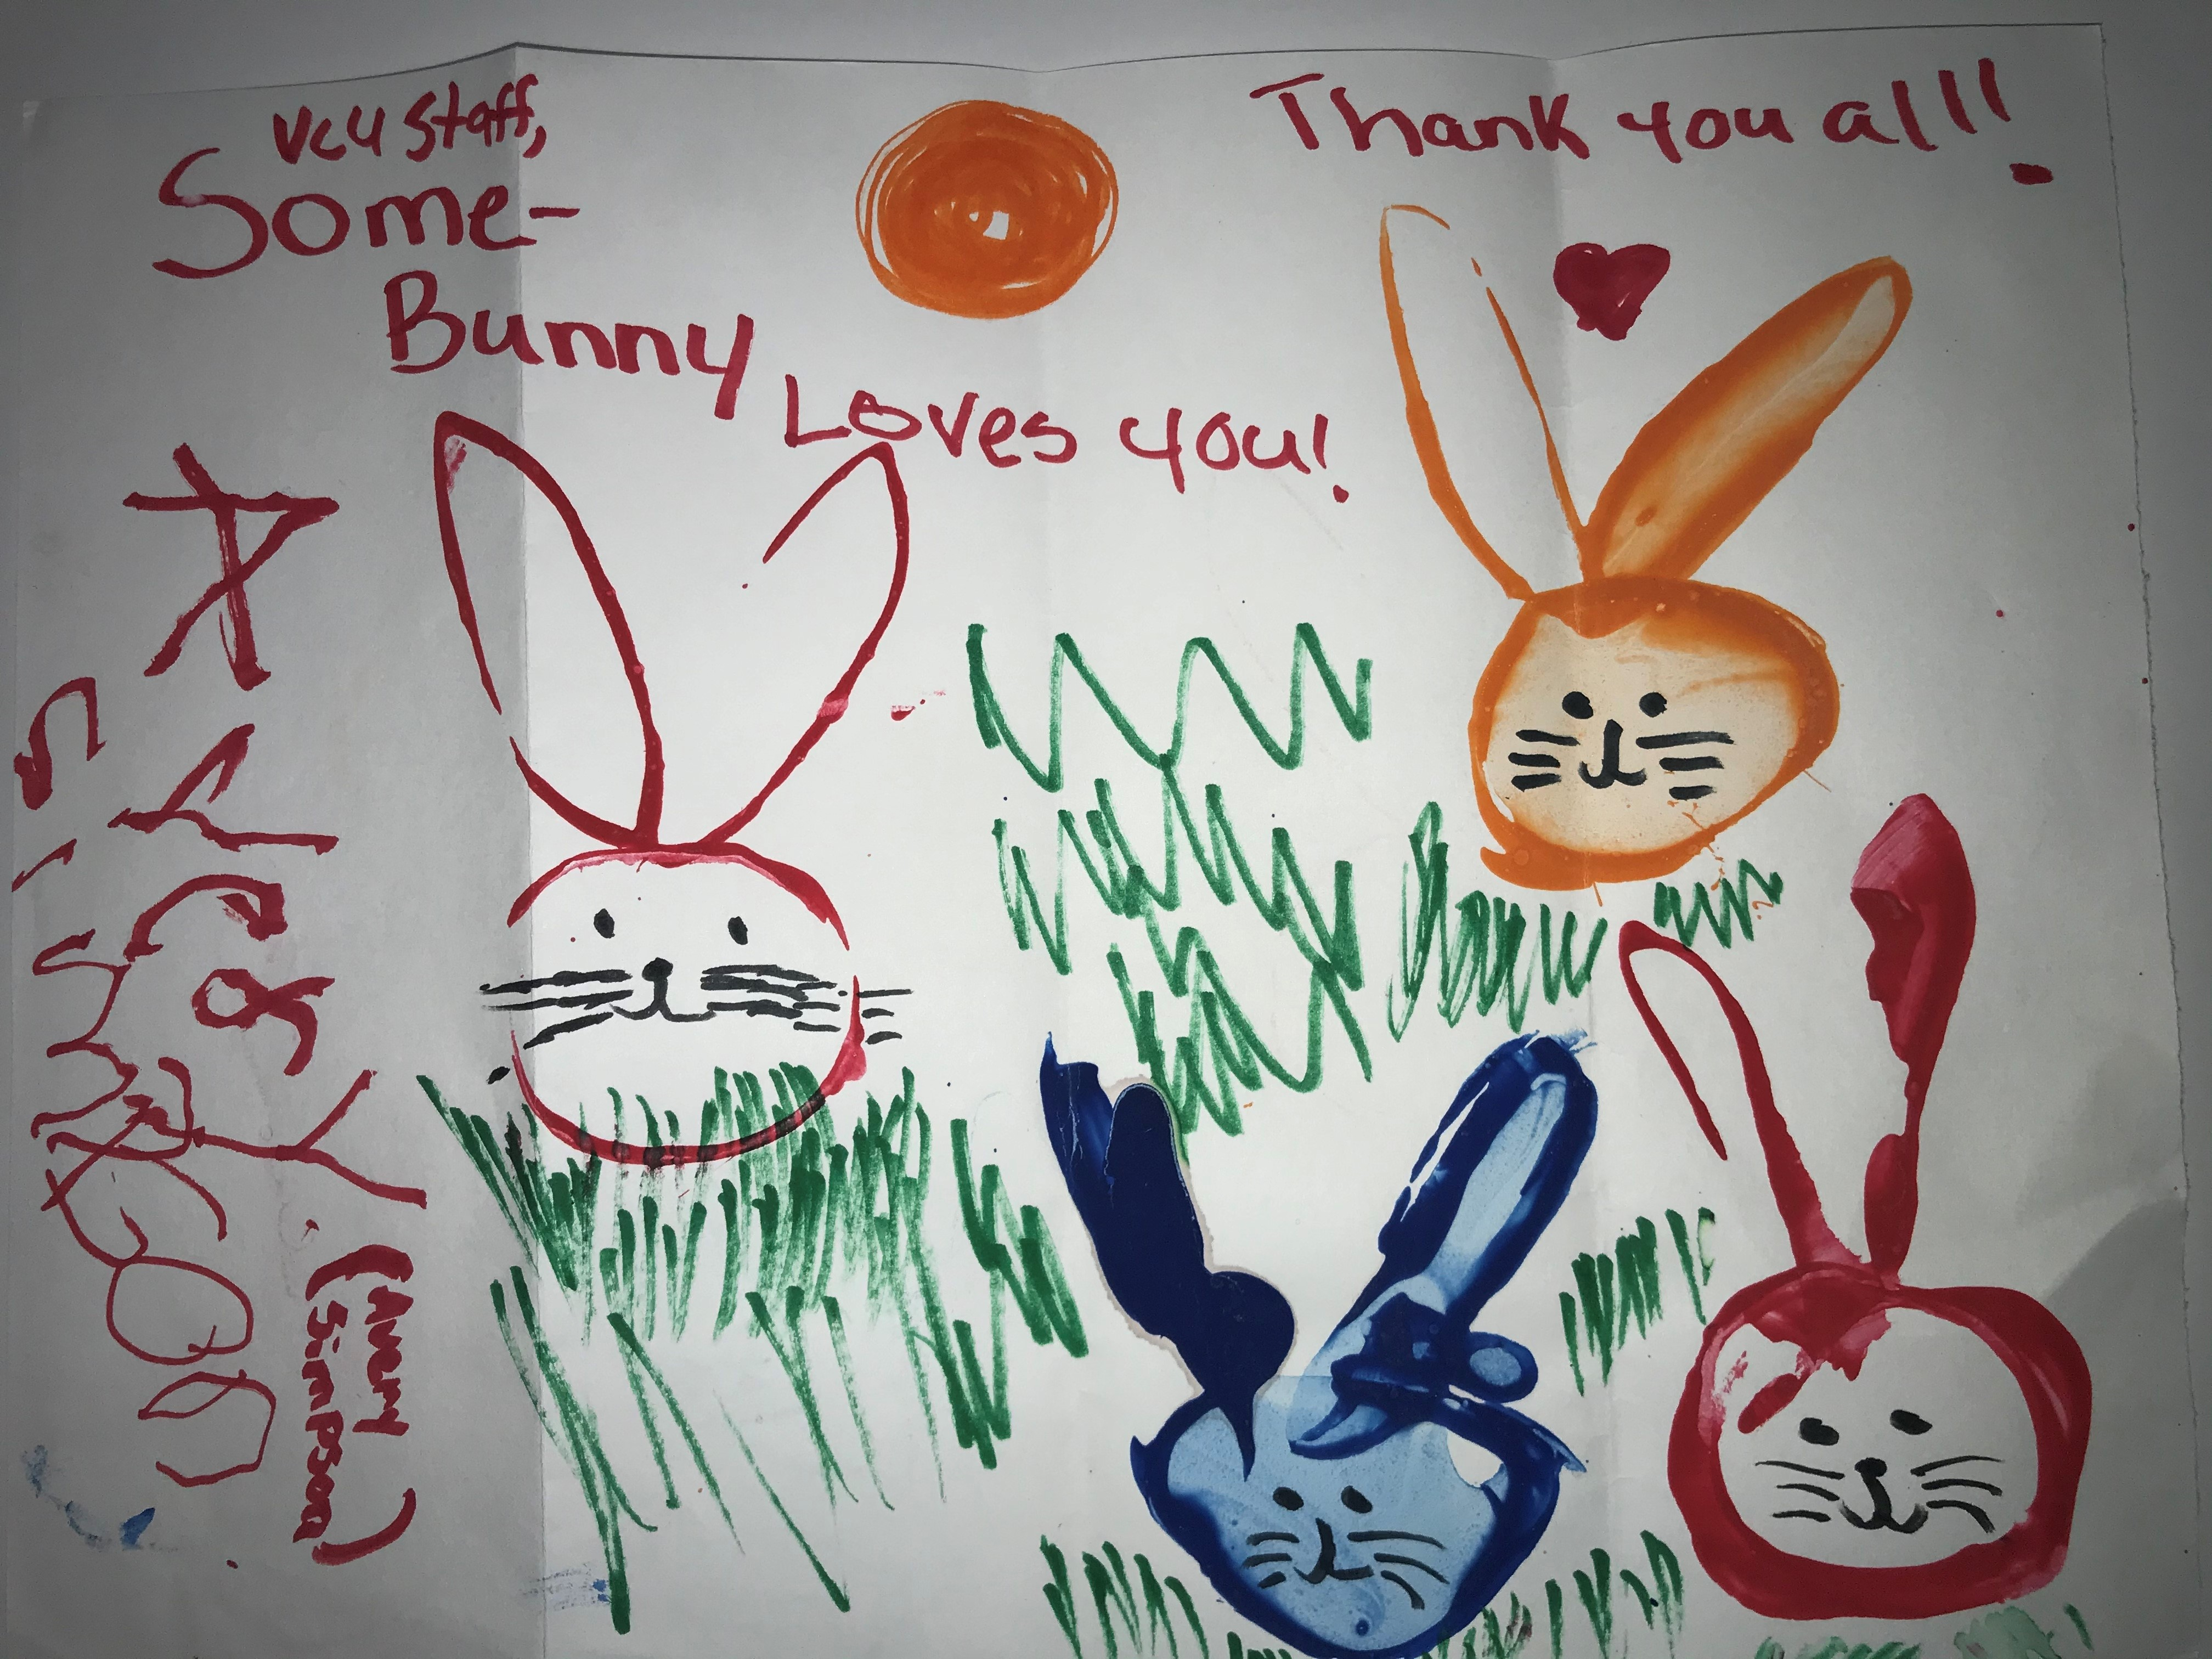 Some-bunny loves you. Thank you all!